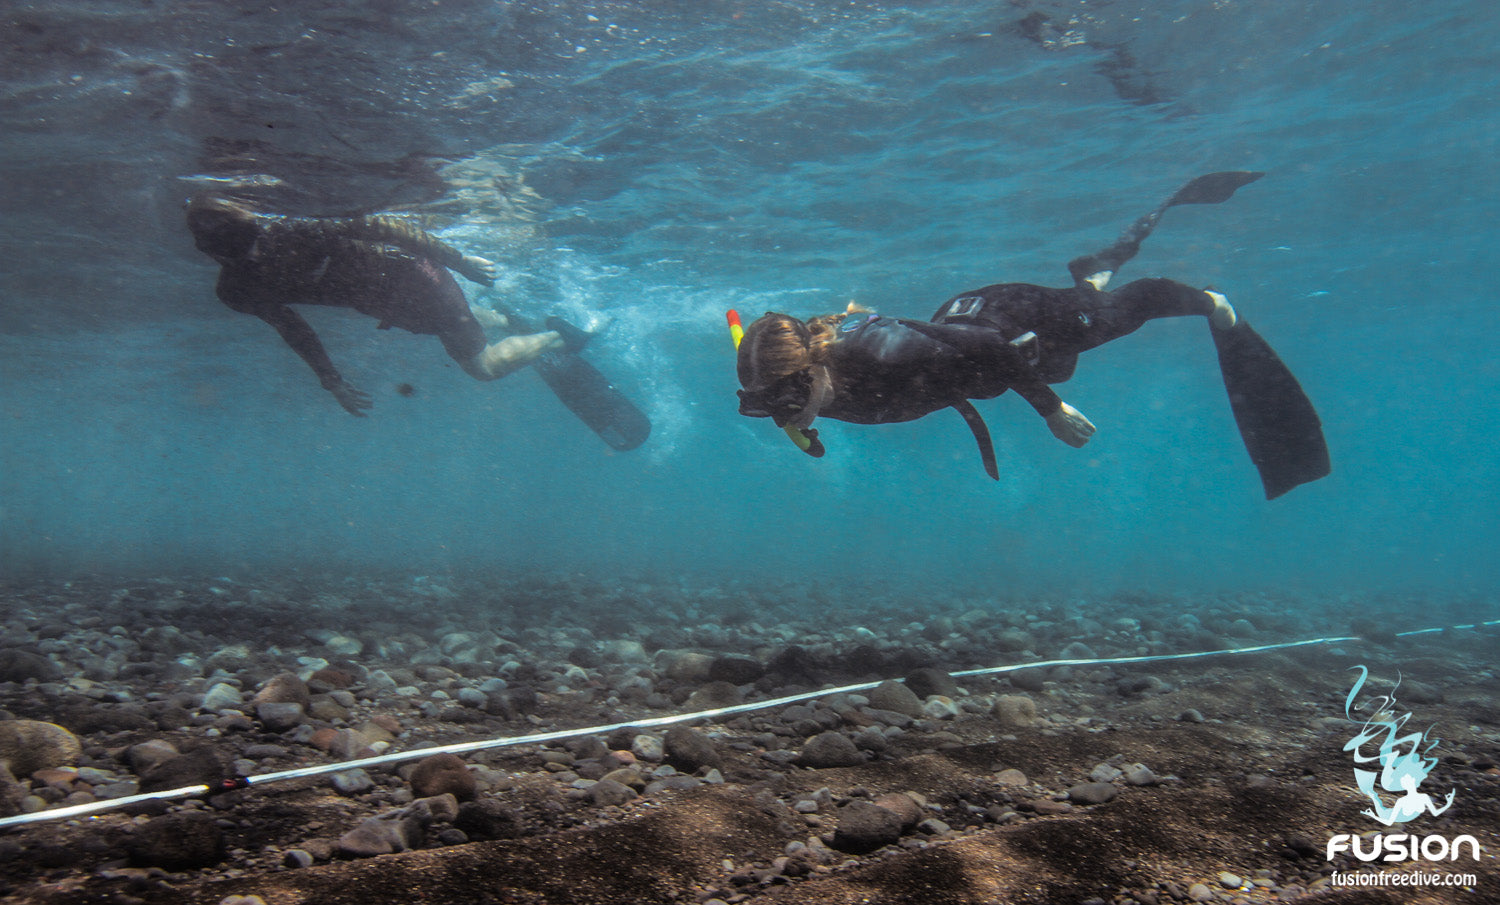 Level 1 Freedive Course - Fusion Freedive and Spearfishing